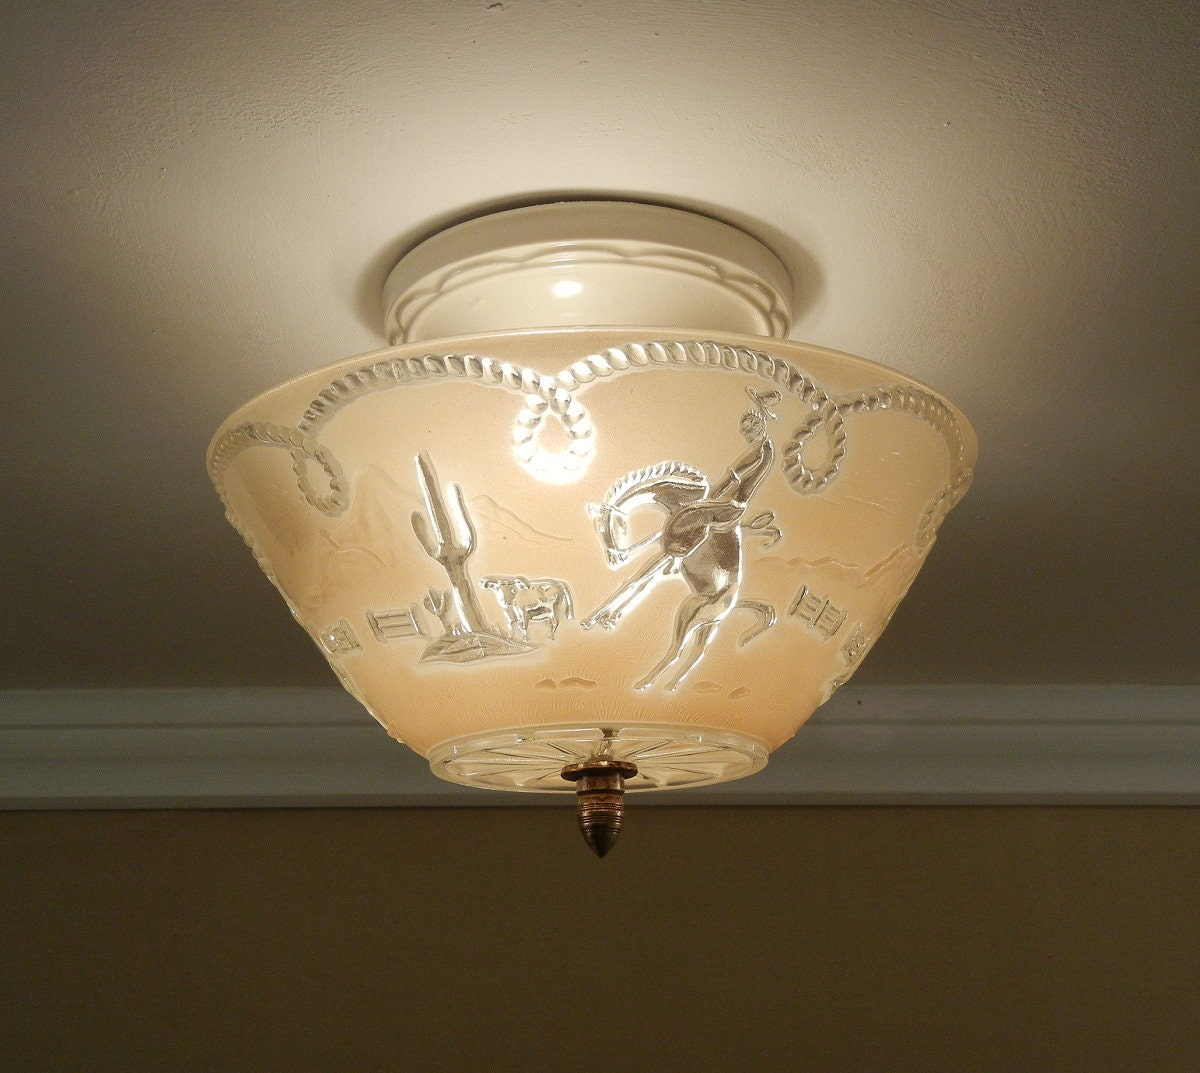 Western Style Ceiling Light Fixtures: Vintage Western Ceiling Light 1940's OLD WEST Cowboy Theme